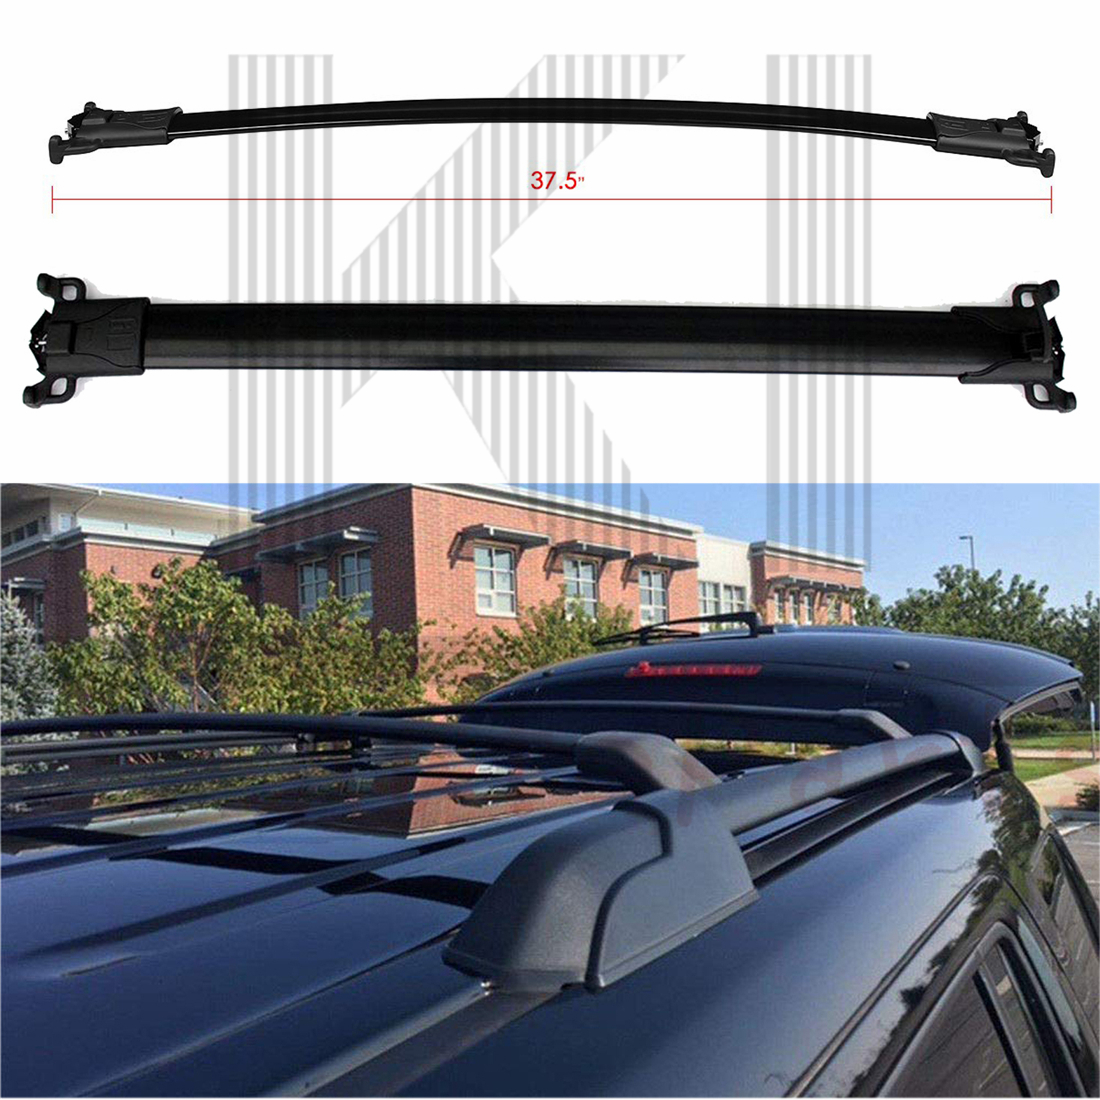 2x Roof Rack Cross Bar Luggage Carrier For 2010-2017 Chevy Equinox GMC Terrain